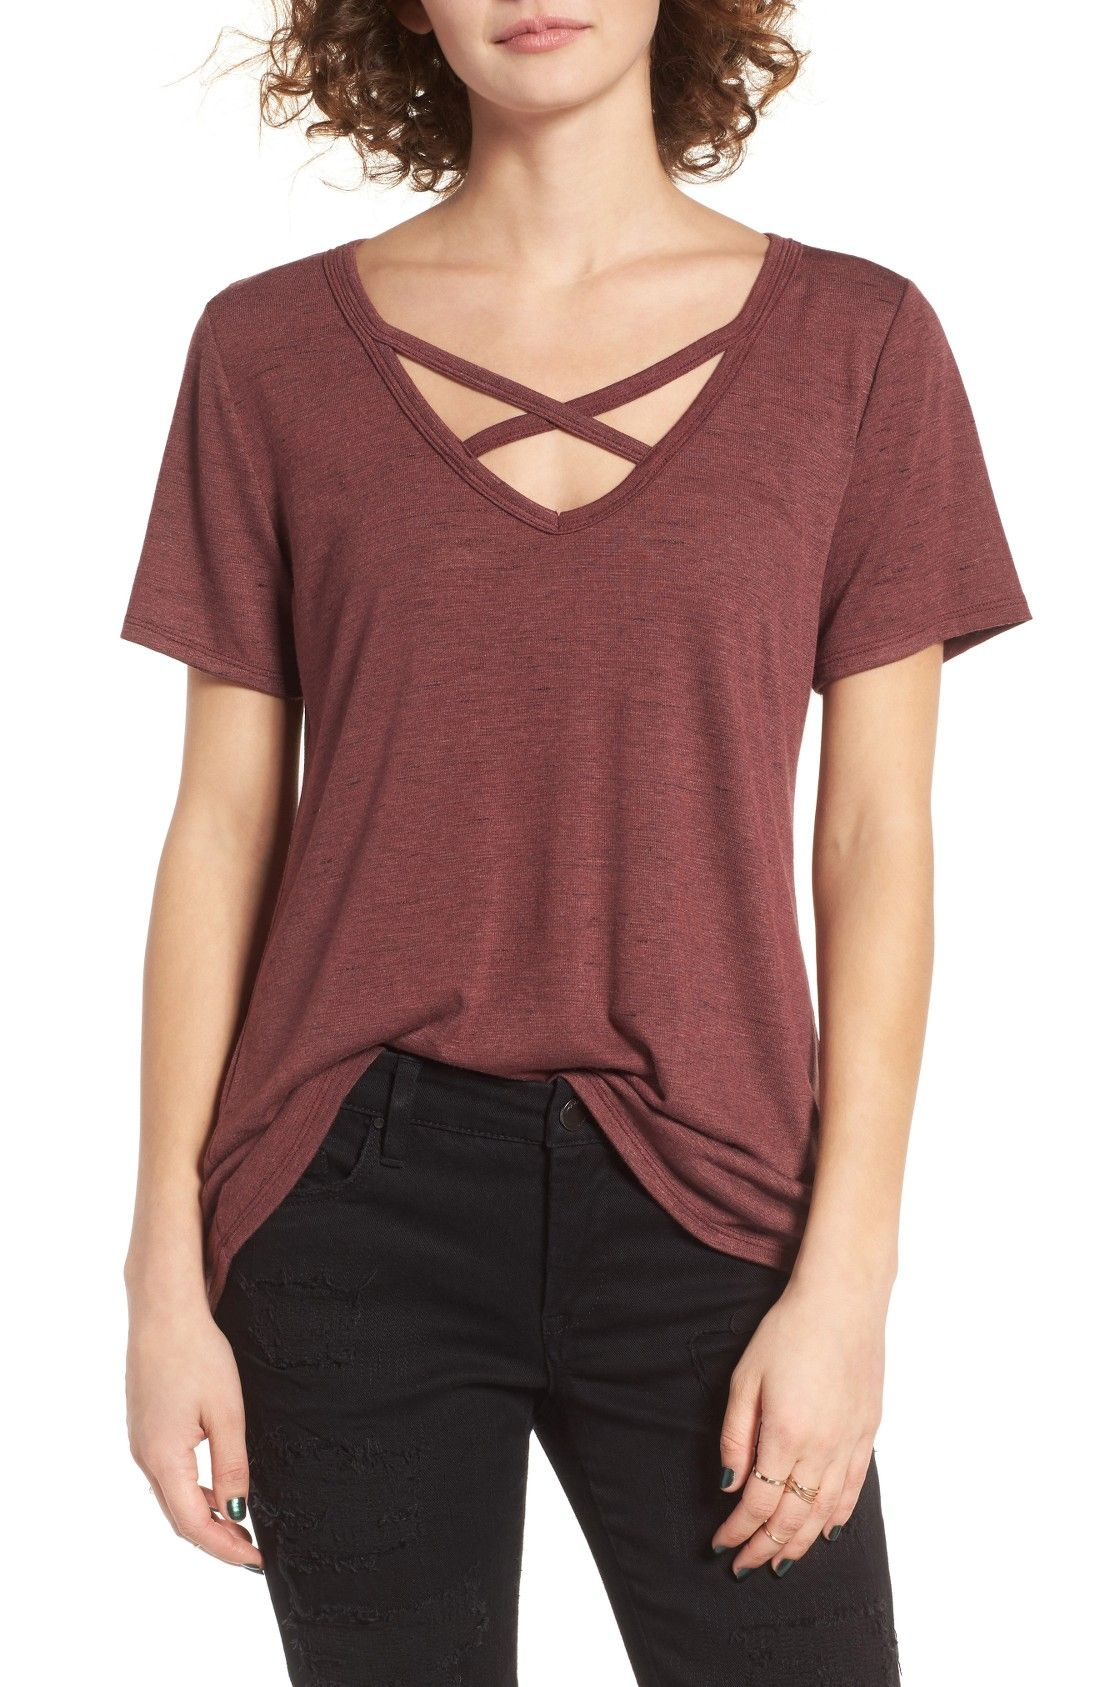 Strap Front Tee Made In Usa Nordstrom Fashion Normal Clothes Clothes